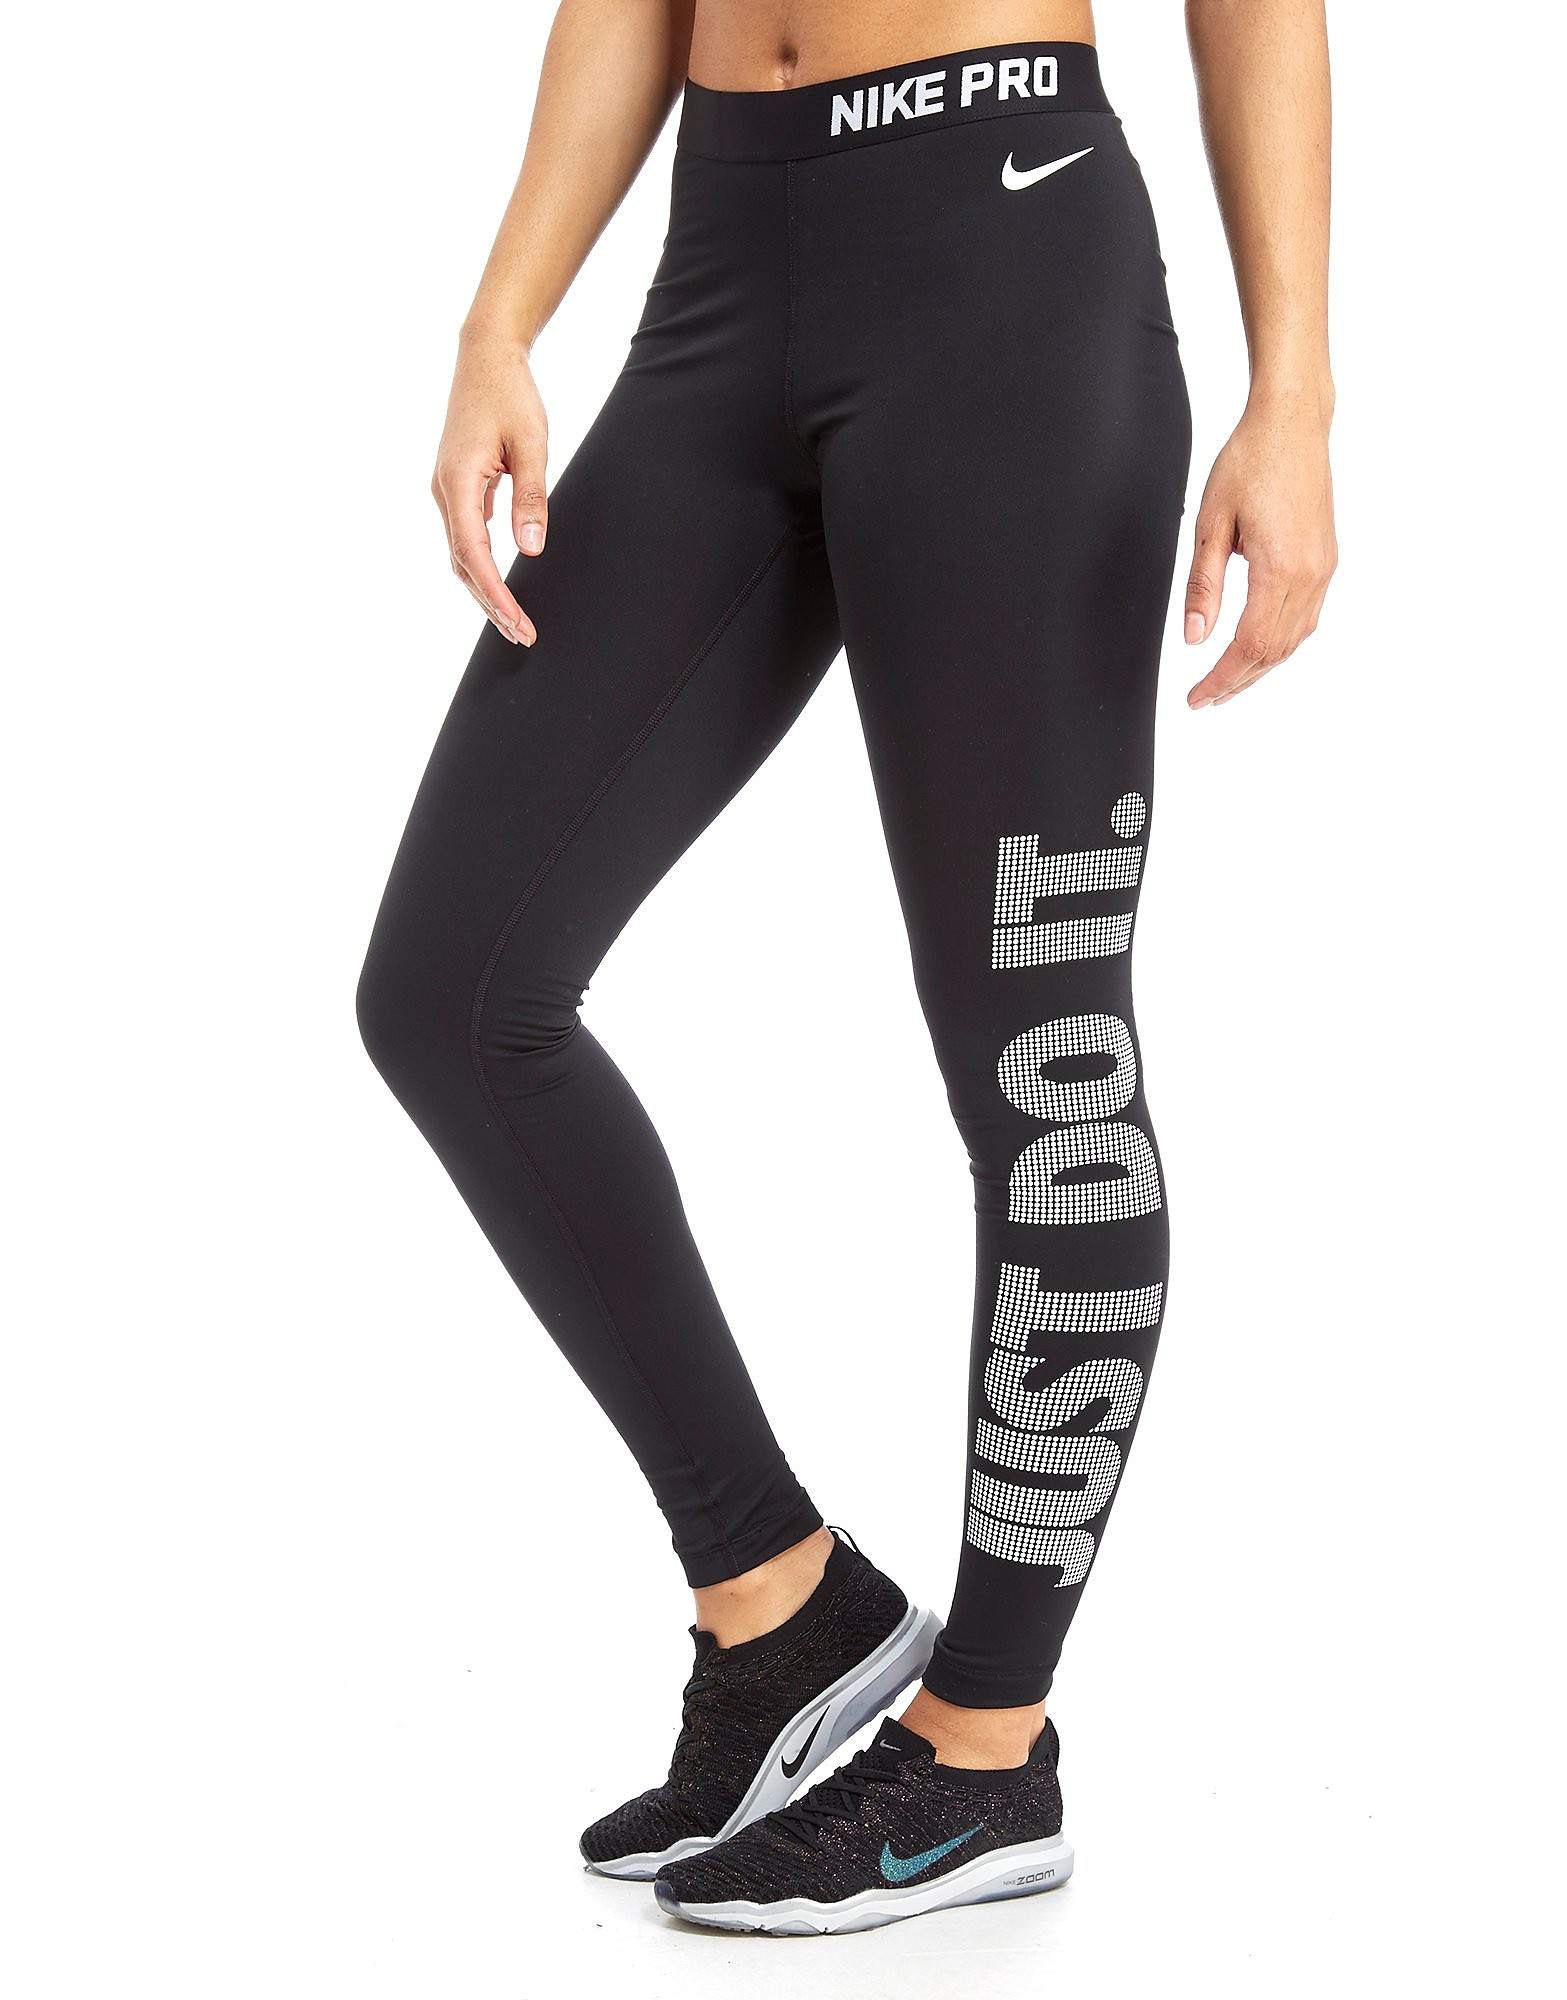 Nike Just Do It Tights